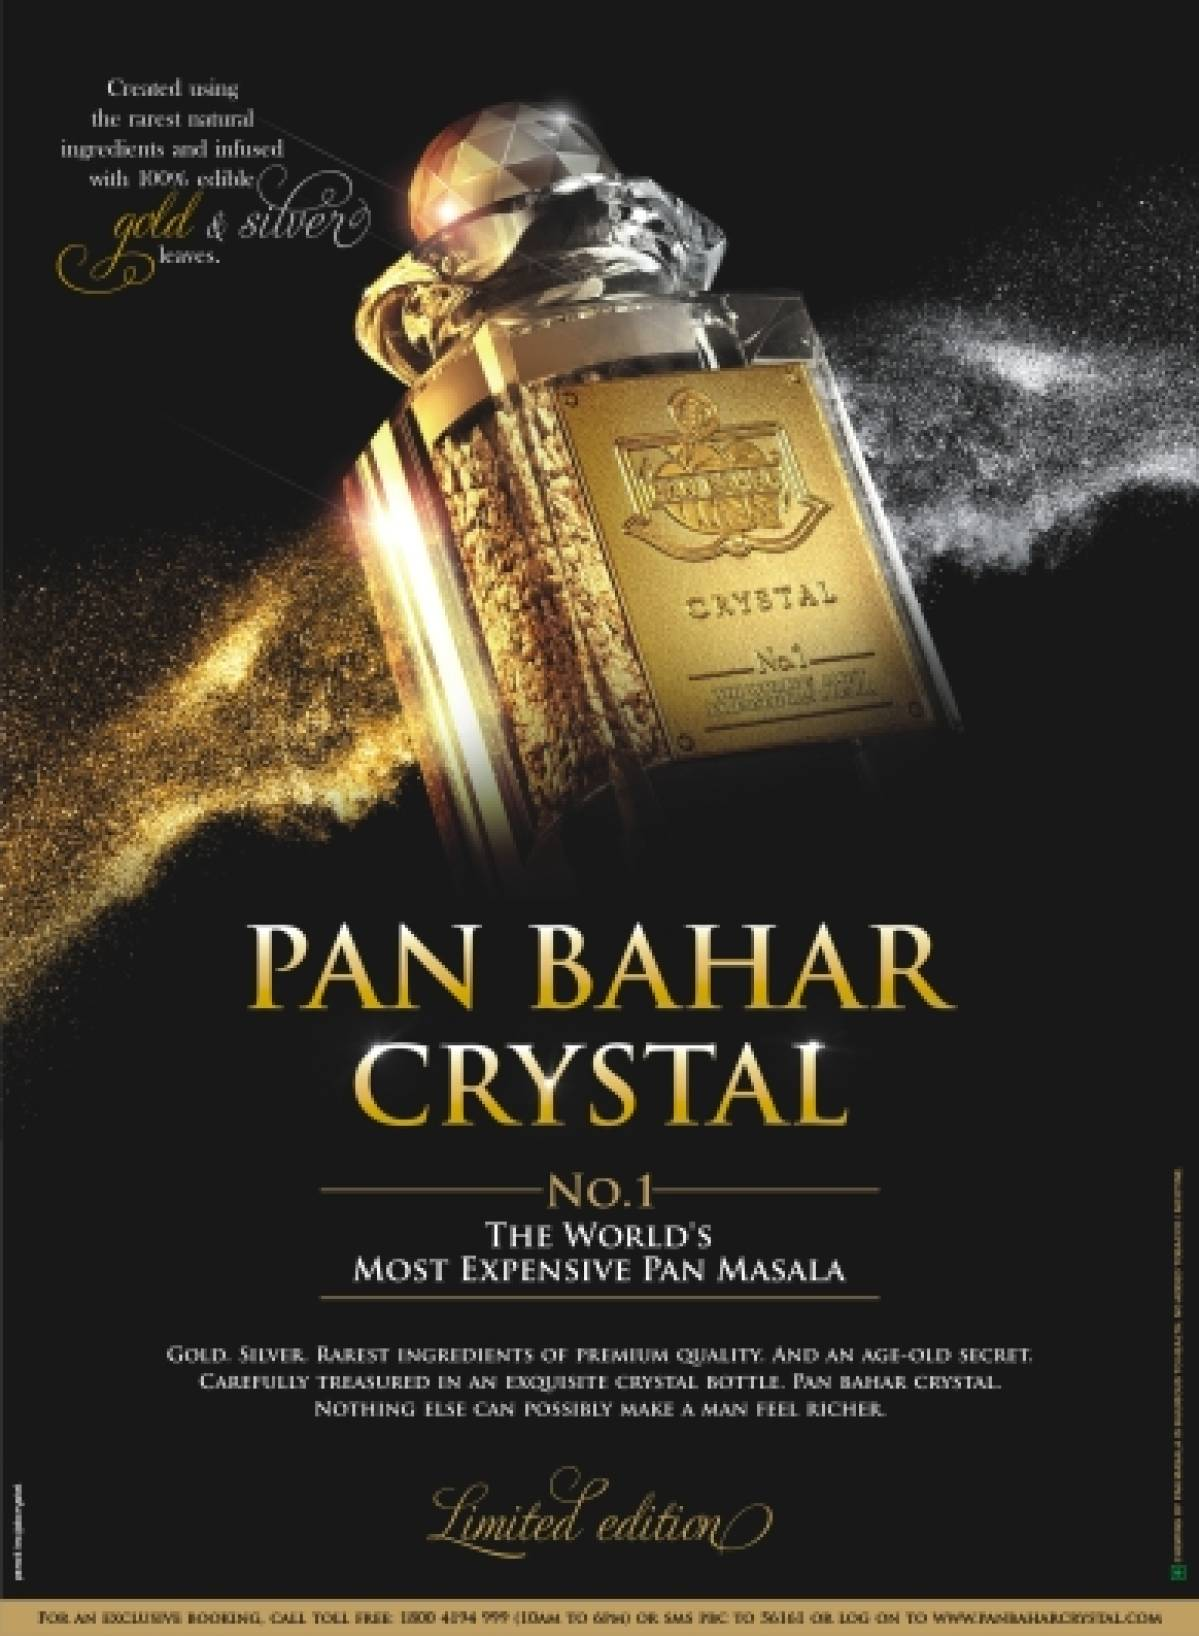 The World's most expensive Pan Masala